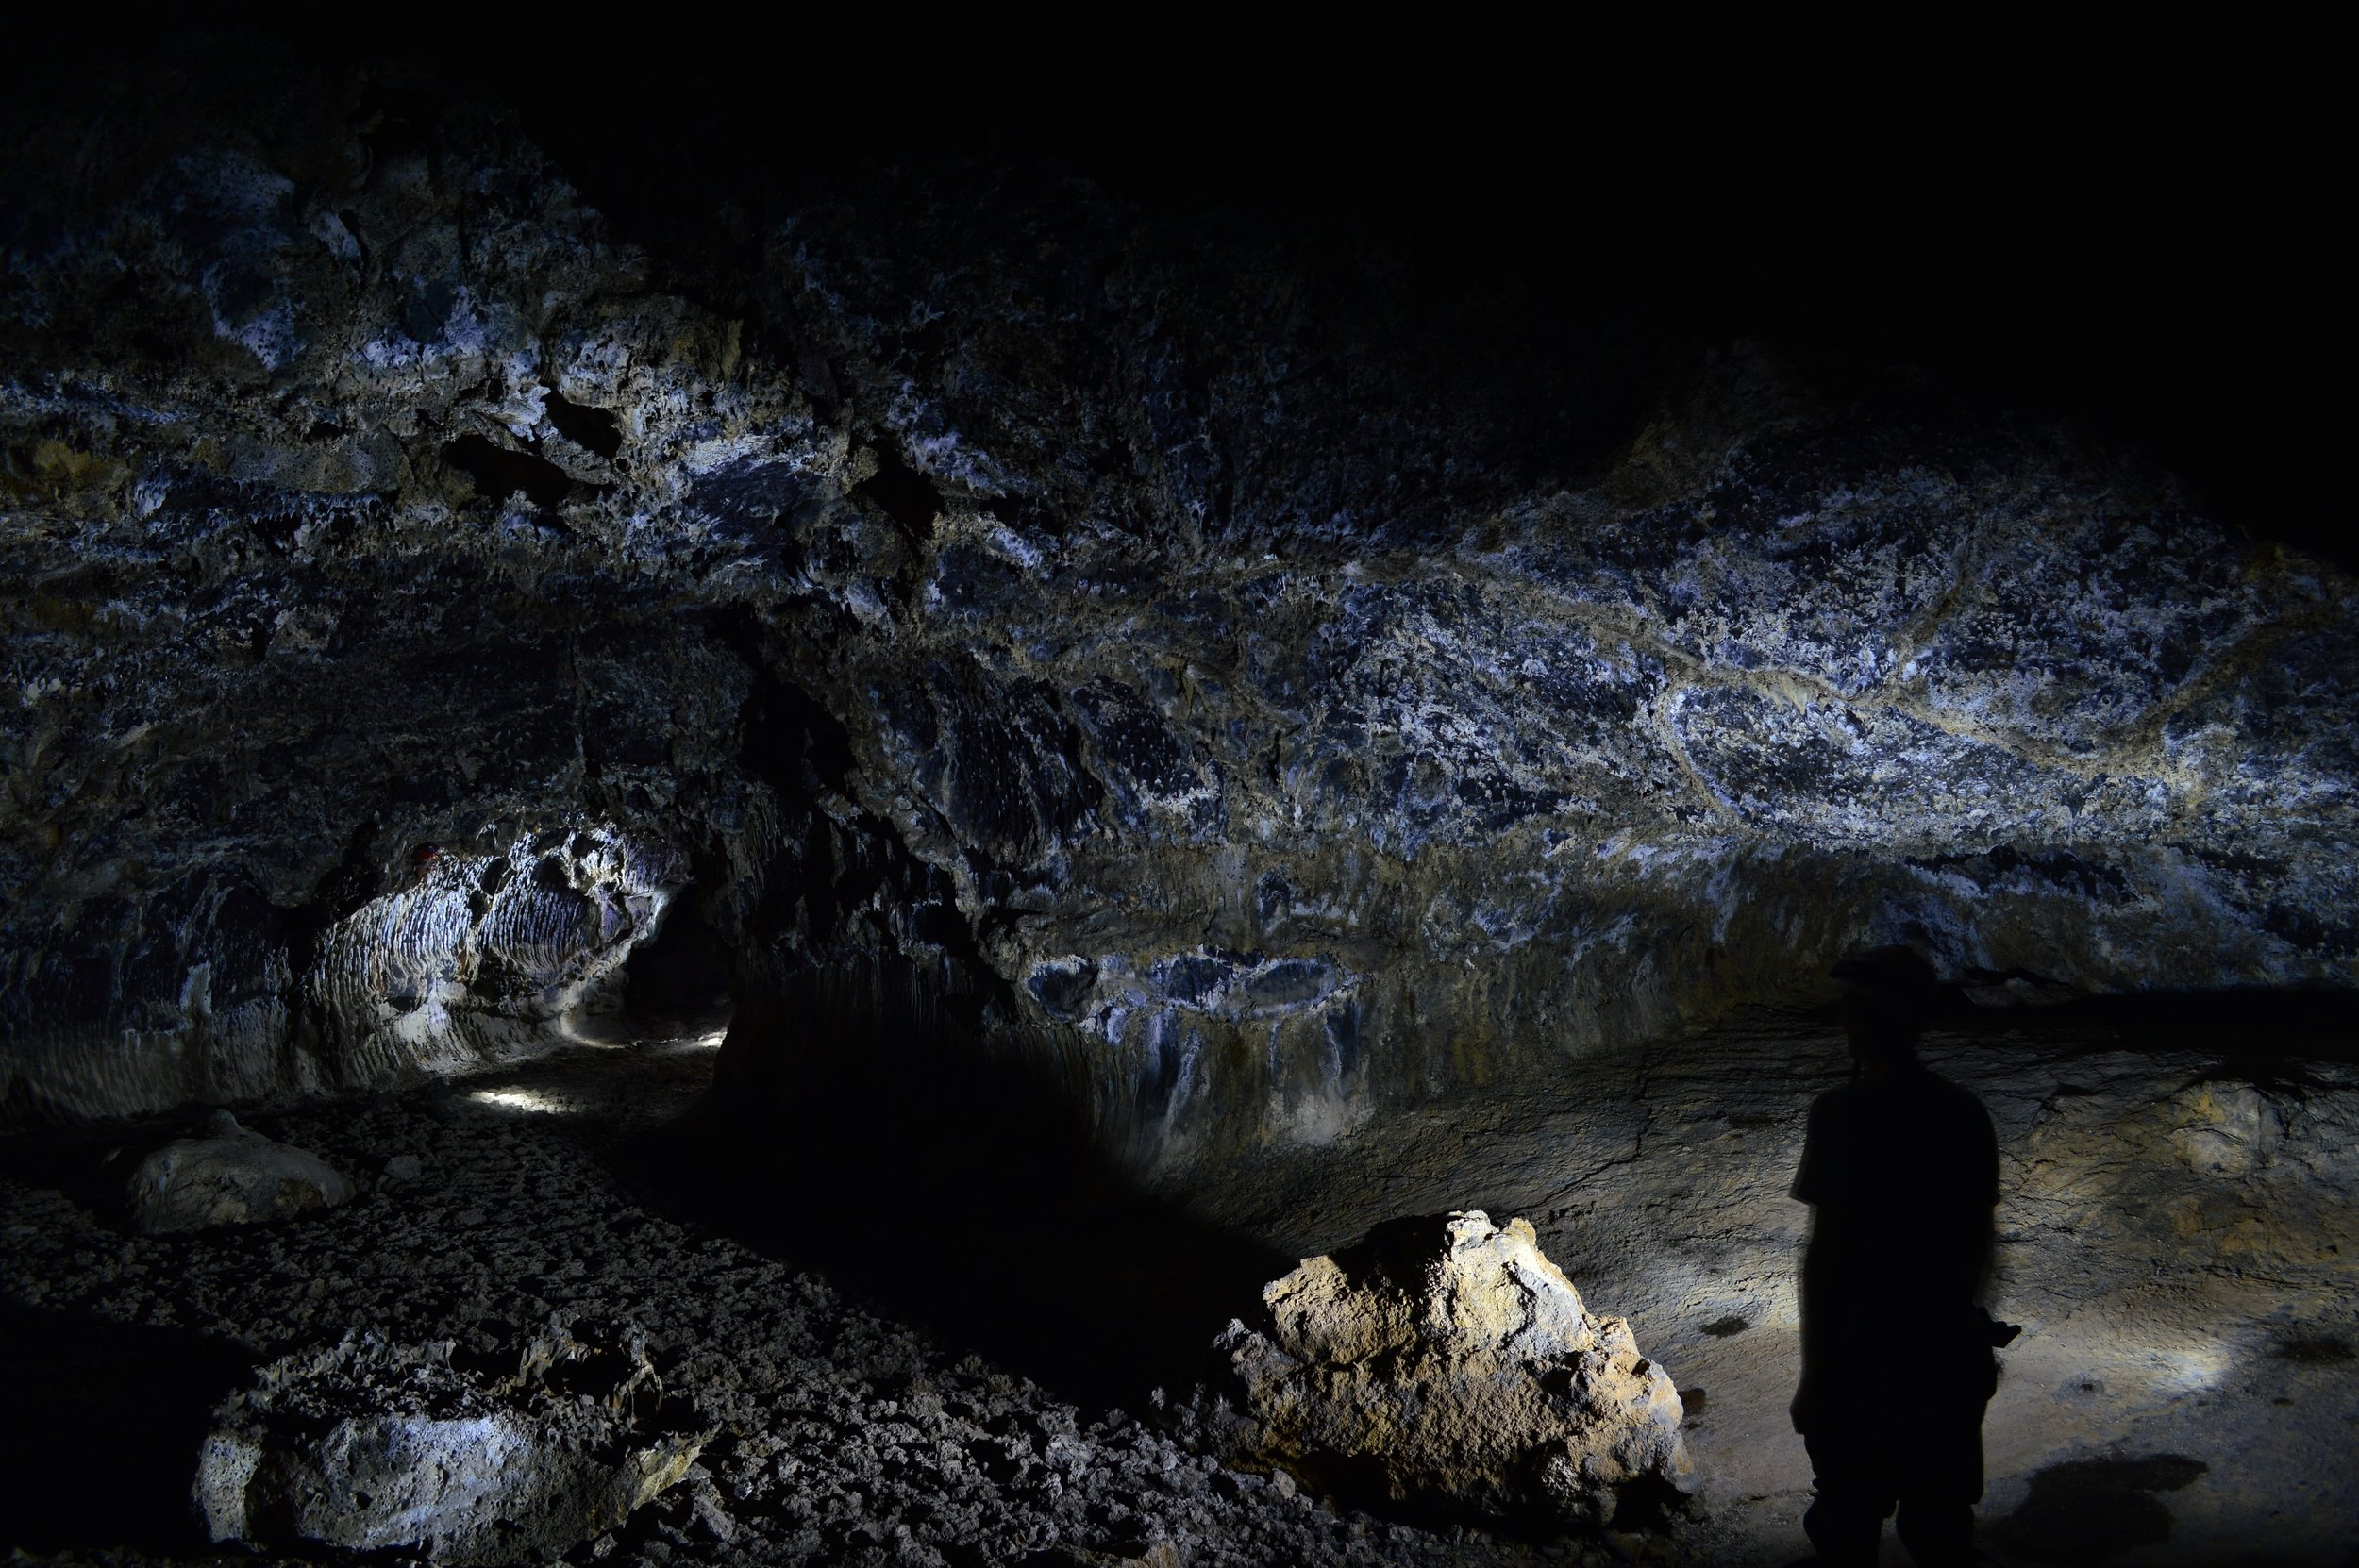 Shadowy Figures in Catacombs Cave. (J. Barden)